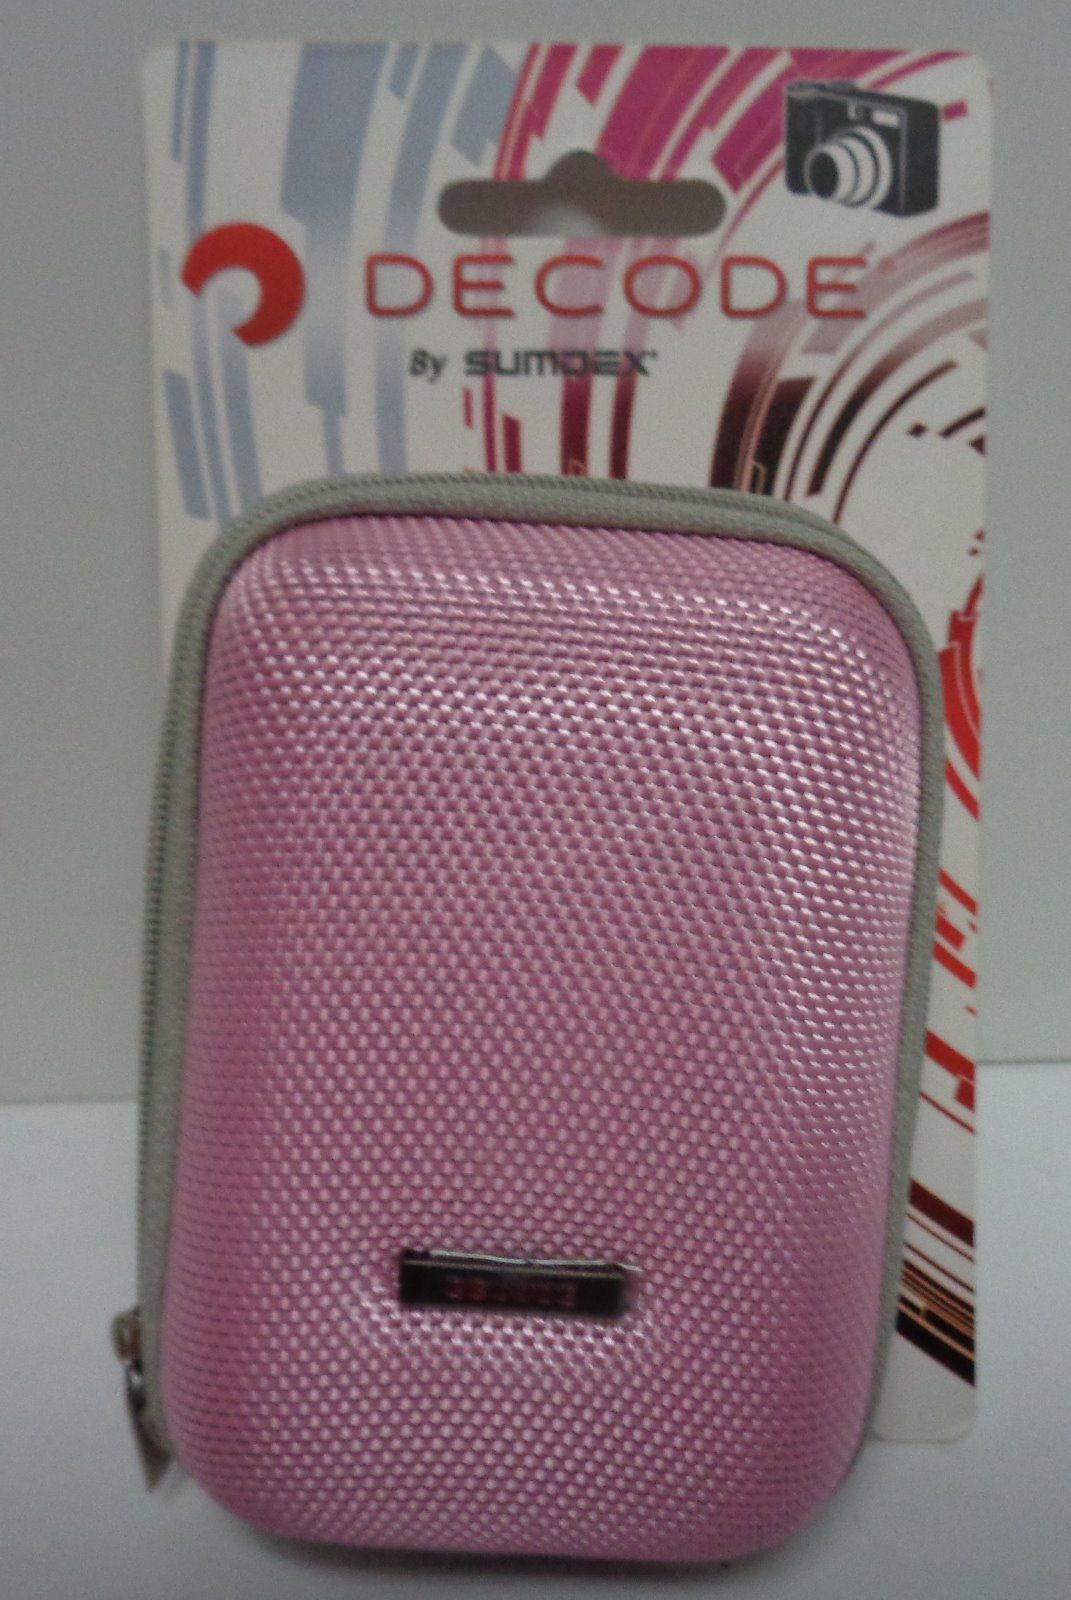 Decode Camera Case Hard Cover Pink NWT by Sumdex